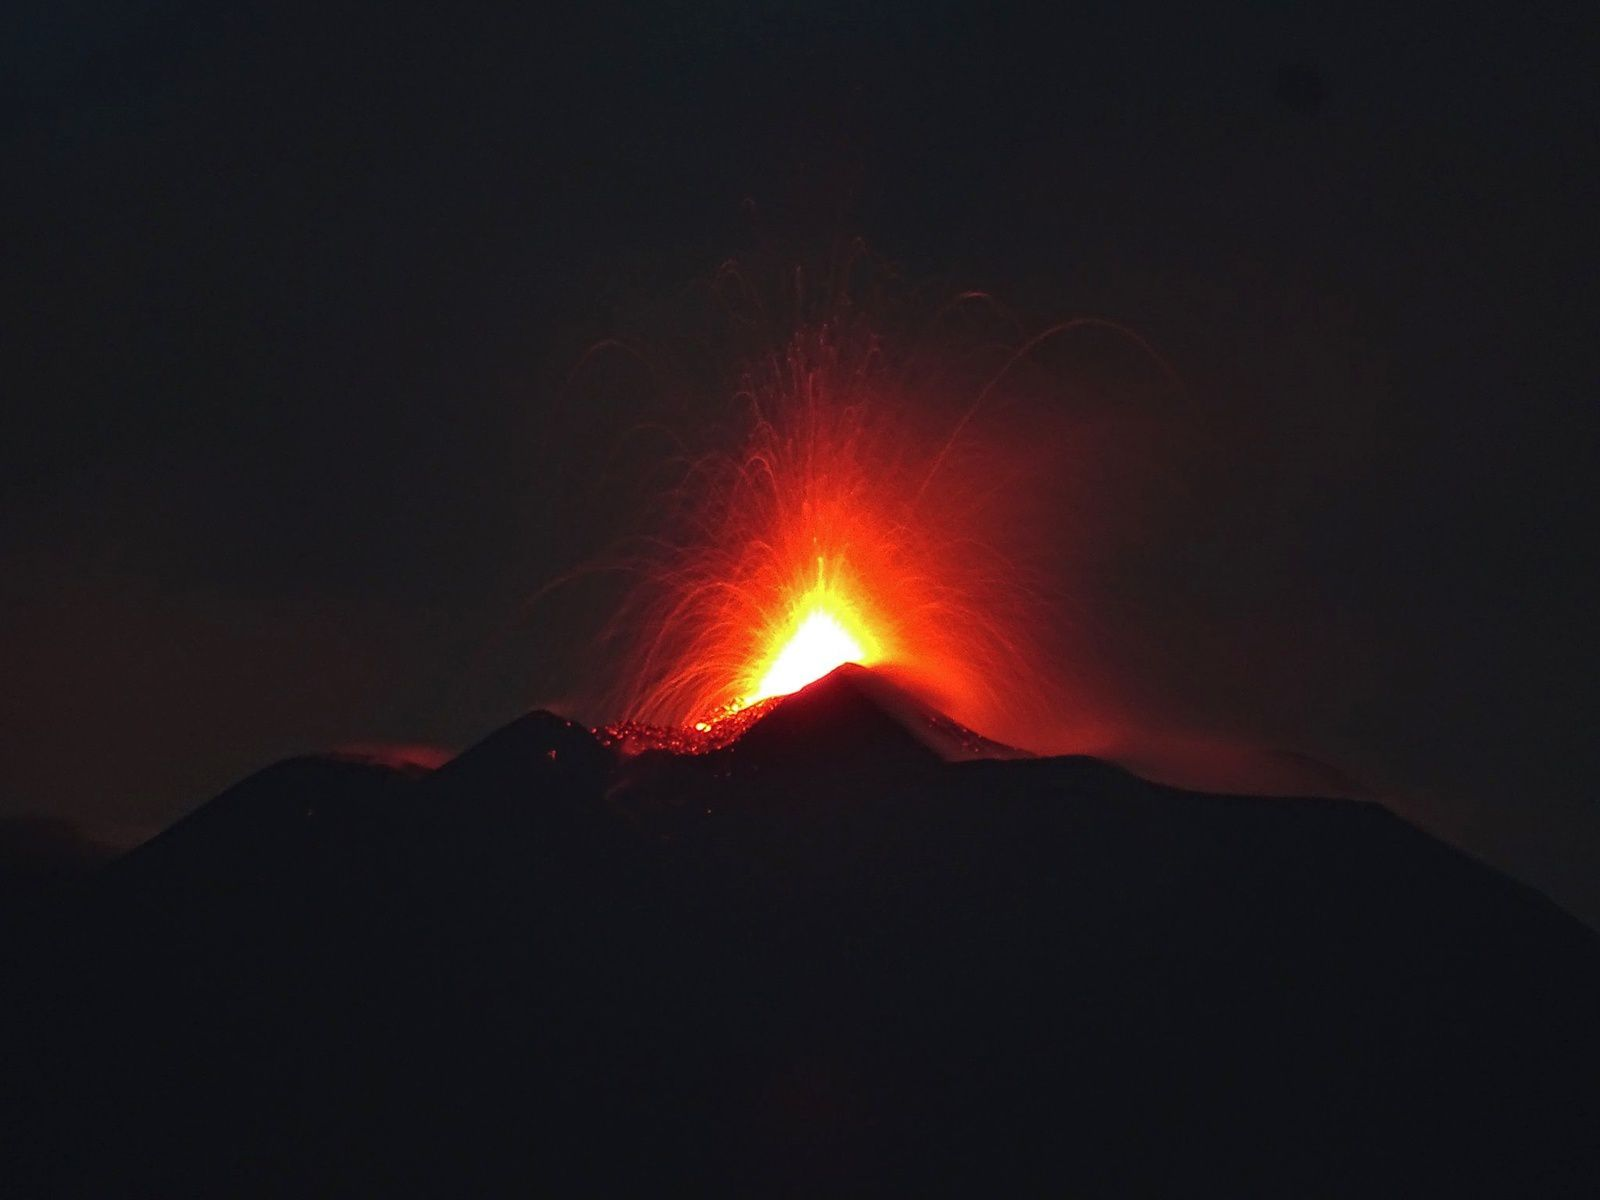 Etna - 24.08.2018 at dawn - Strombolian activity of the NSEC - photo Boris Behncke